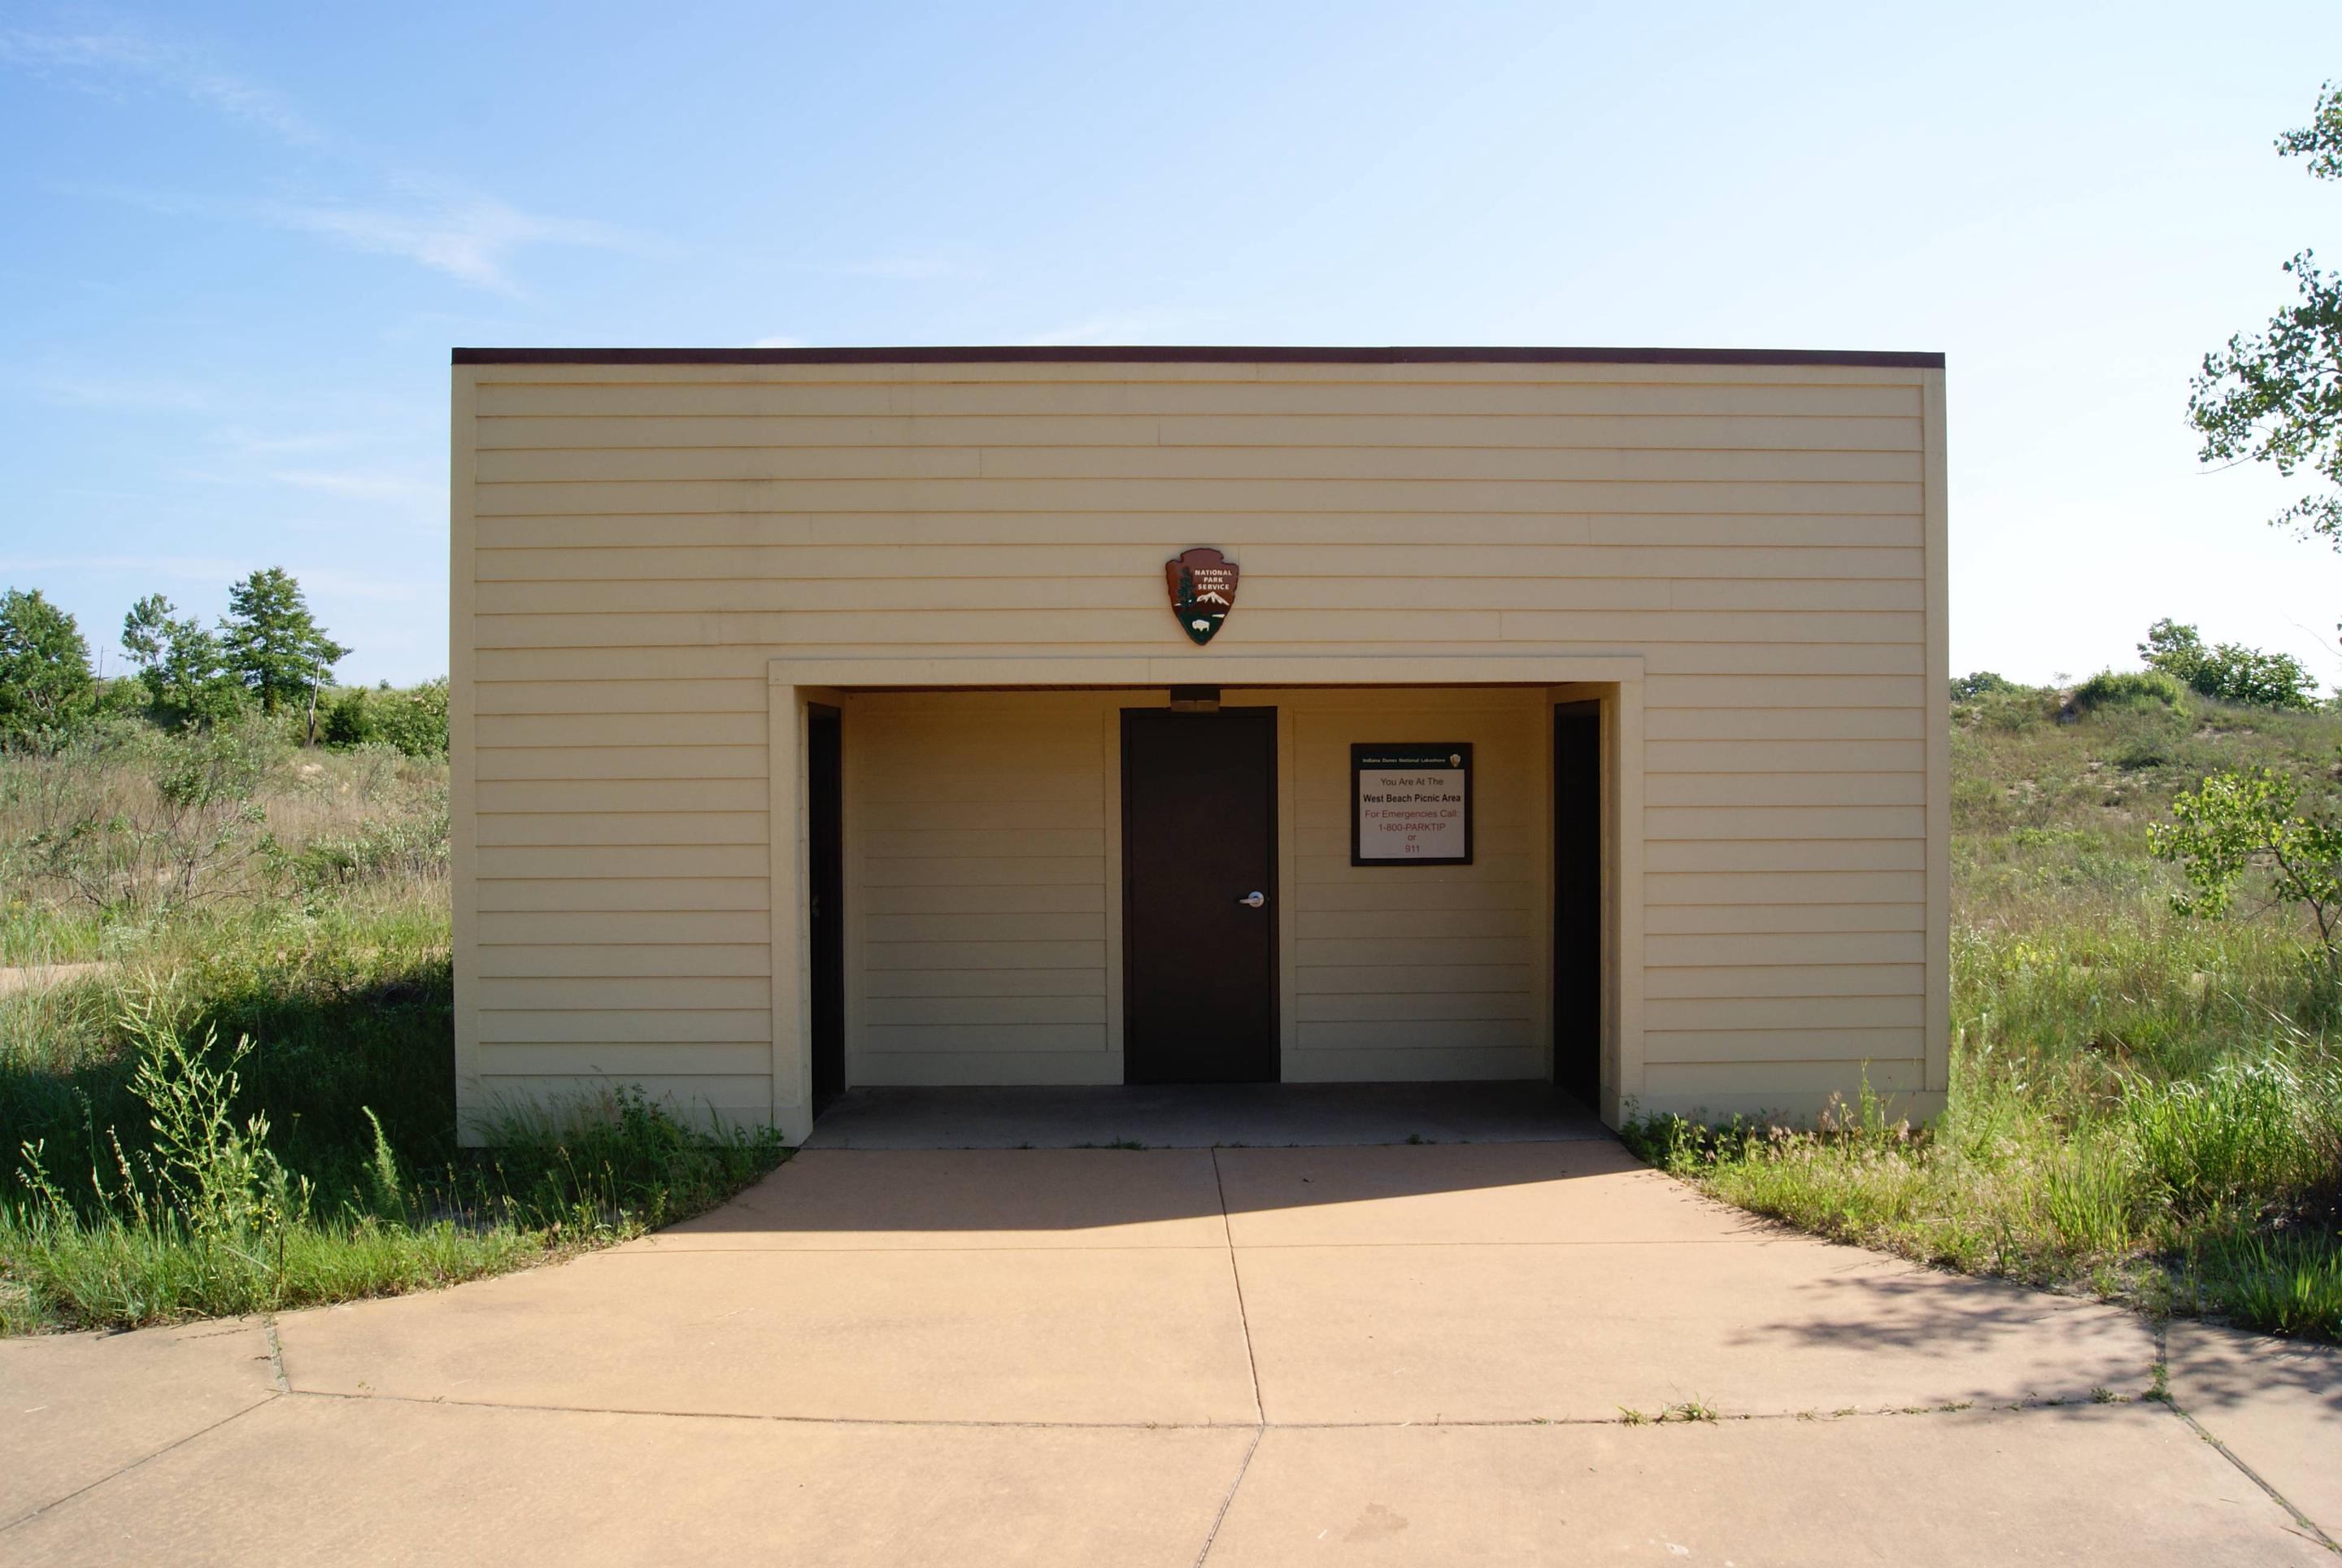 Bathroom at the West Beach Picnic Shelters